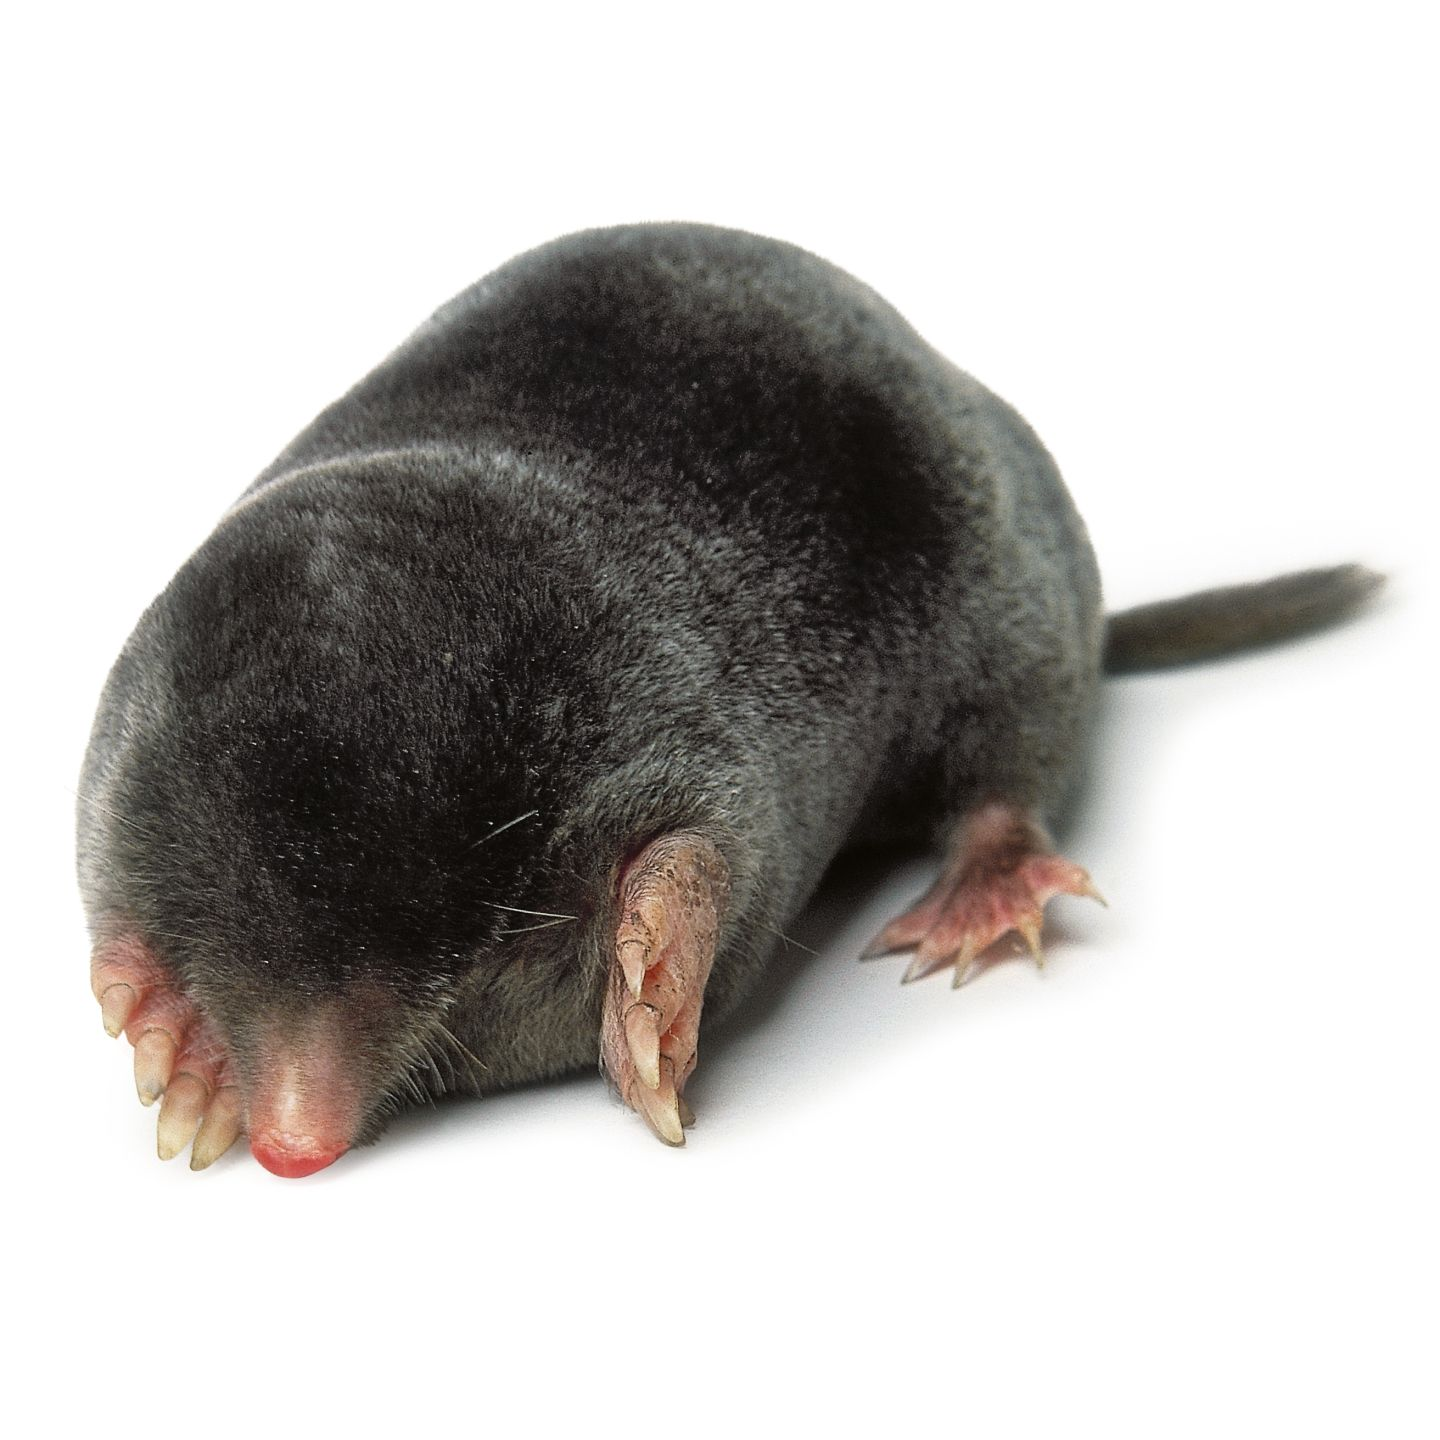 Mole (Animal) - Facts, Pictures, Diet, Character, Behavior